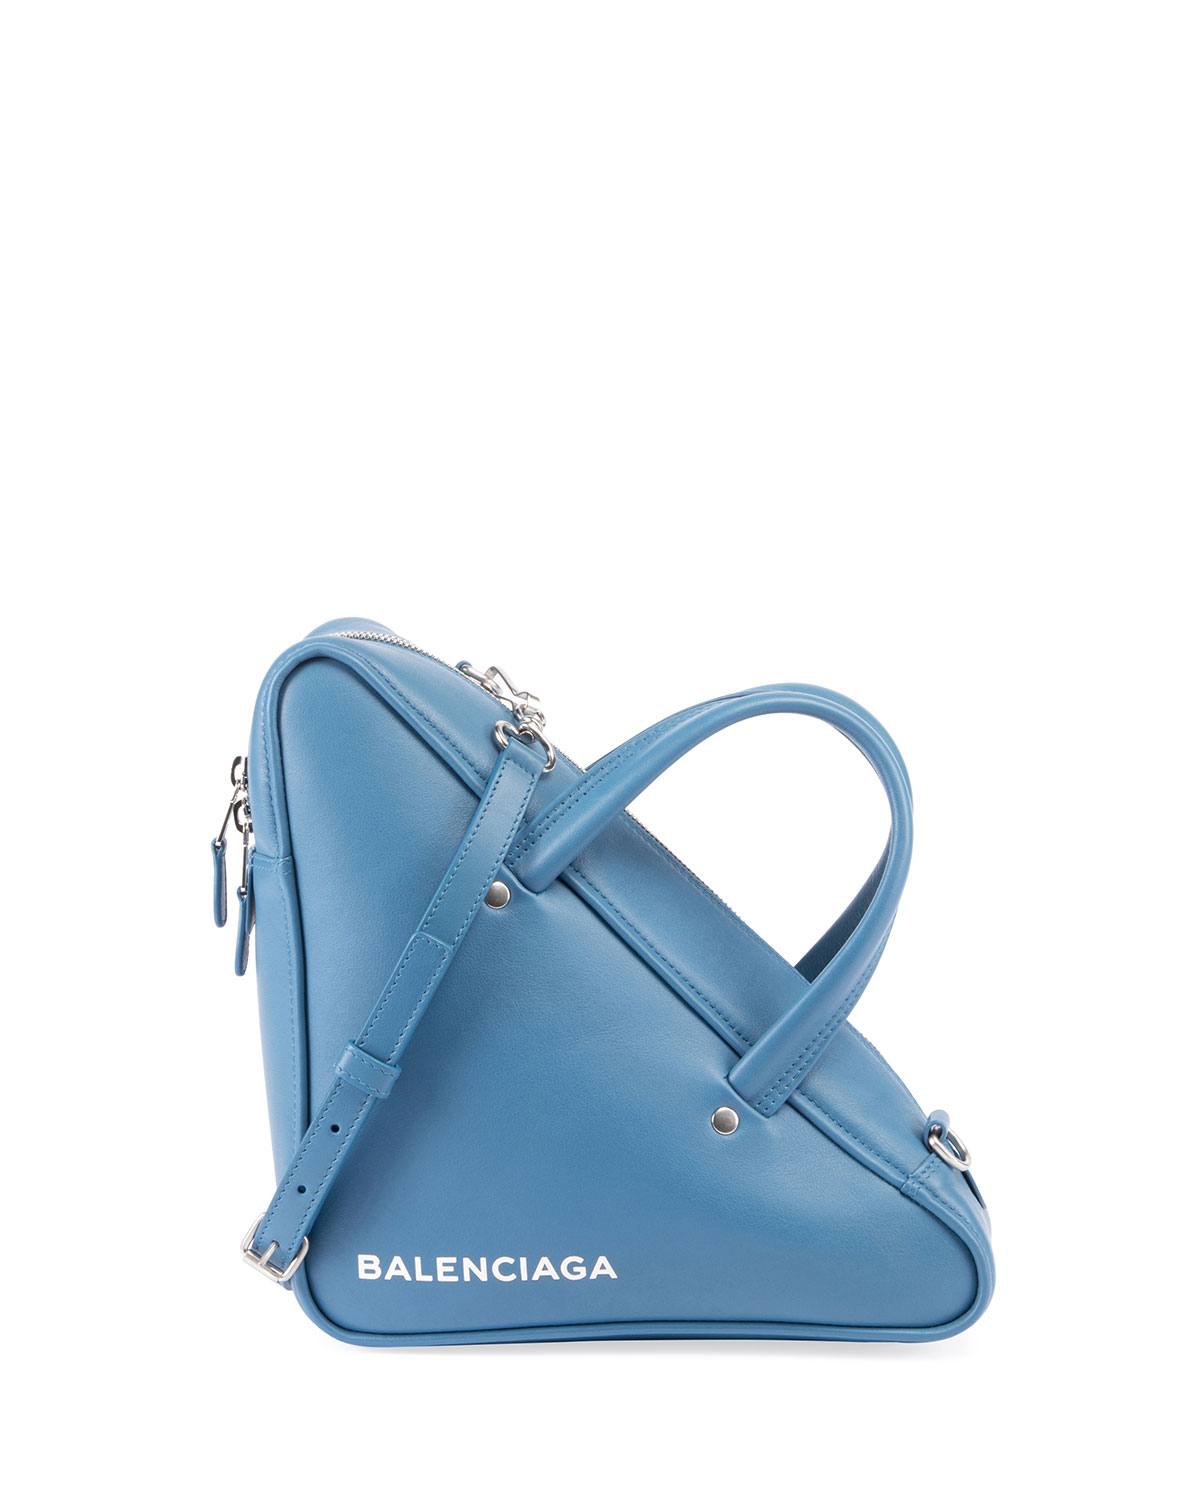 a29d6d46ae94 Balenciaga Triangle Duffel Small Leather Bag